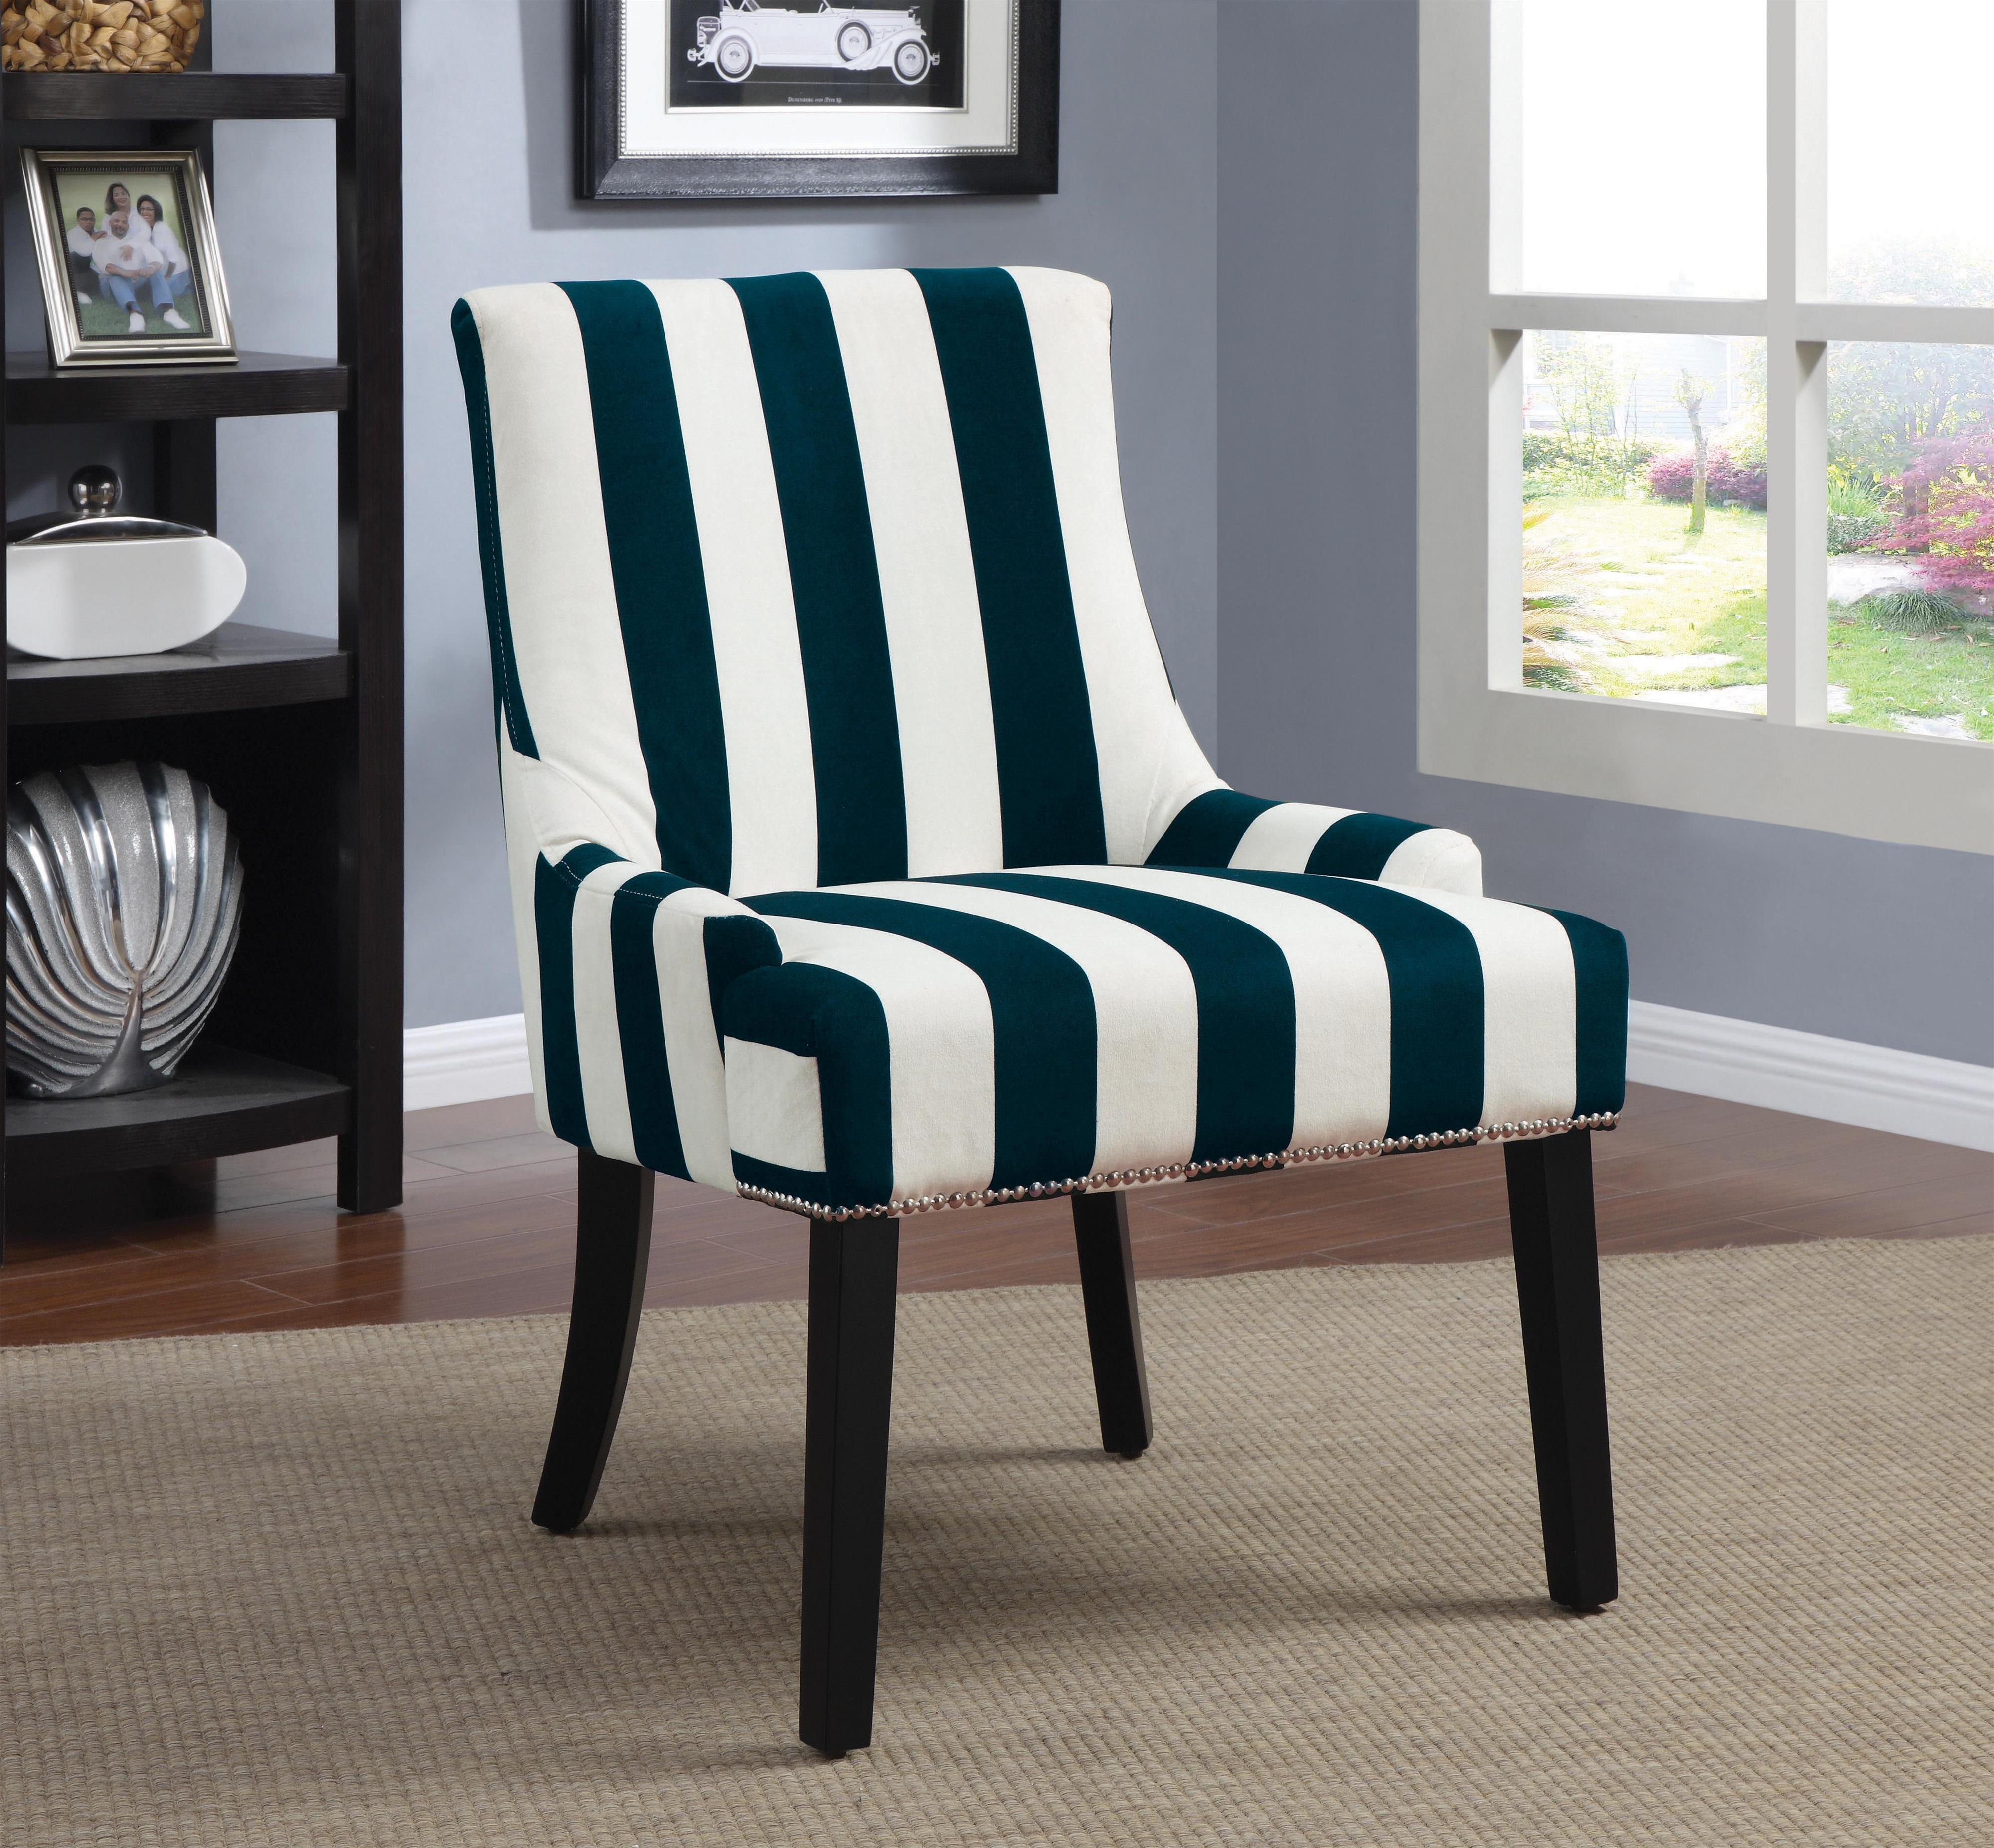 Coaster Accent Seating Armless Upholstered Chair  - Item Number: 902188